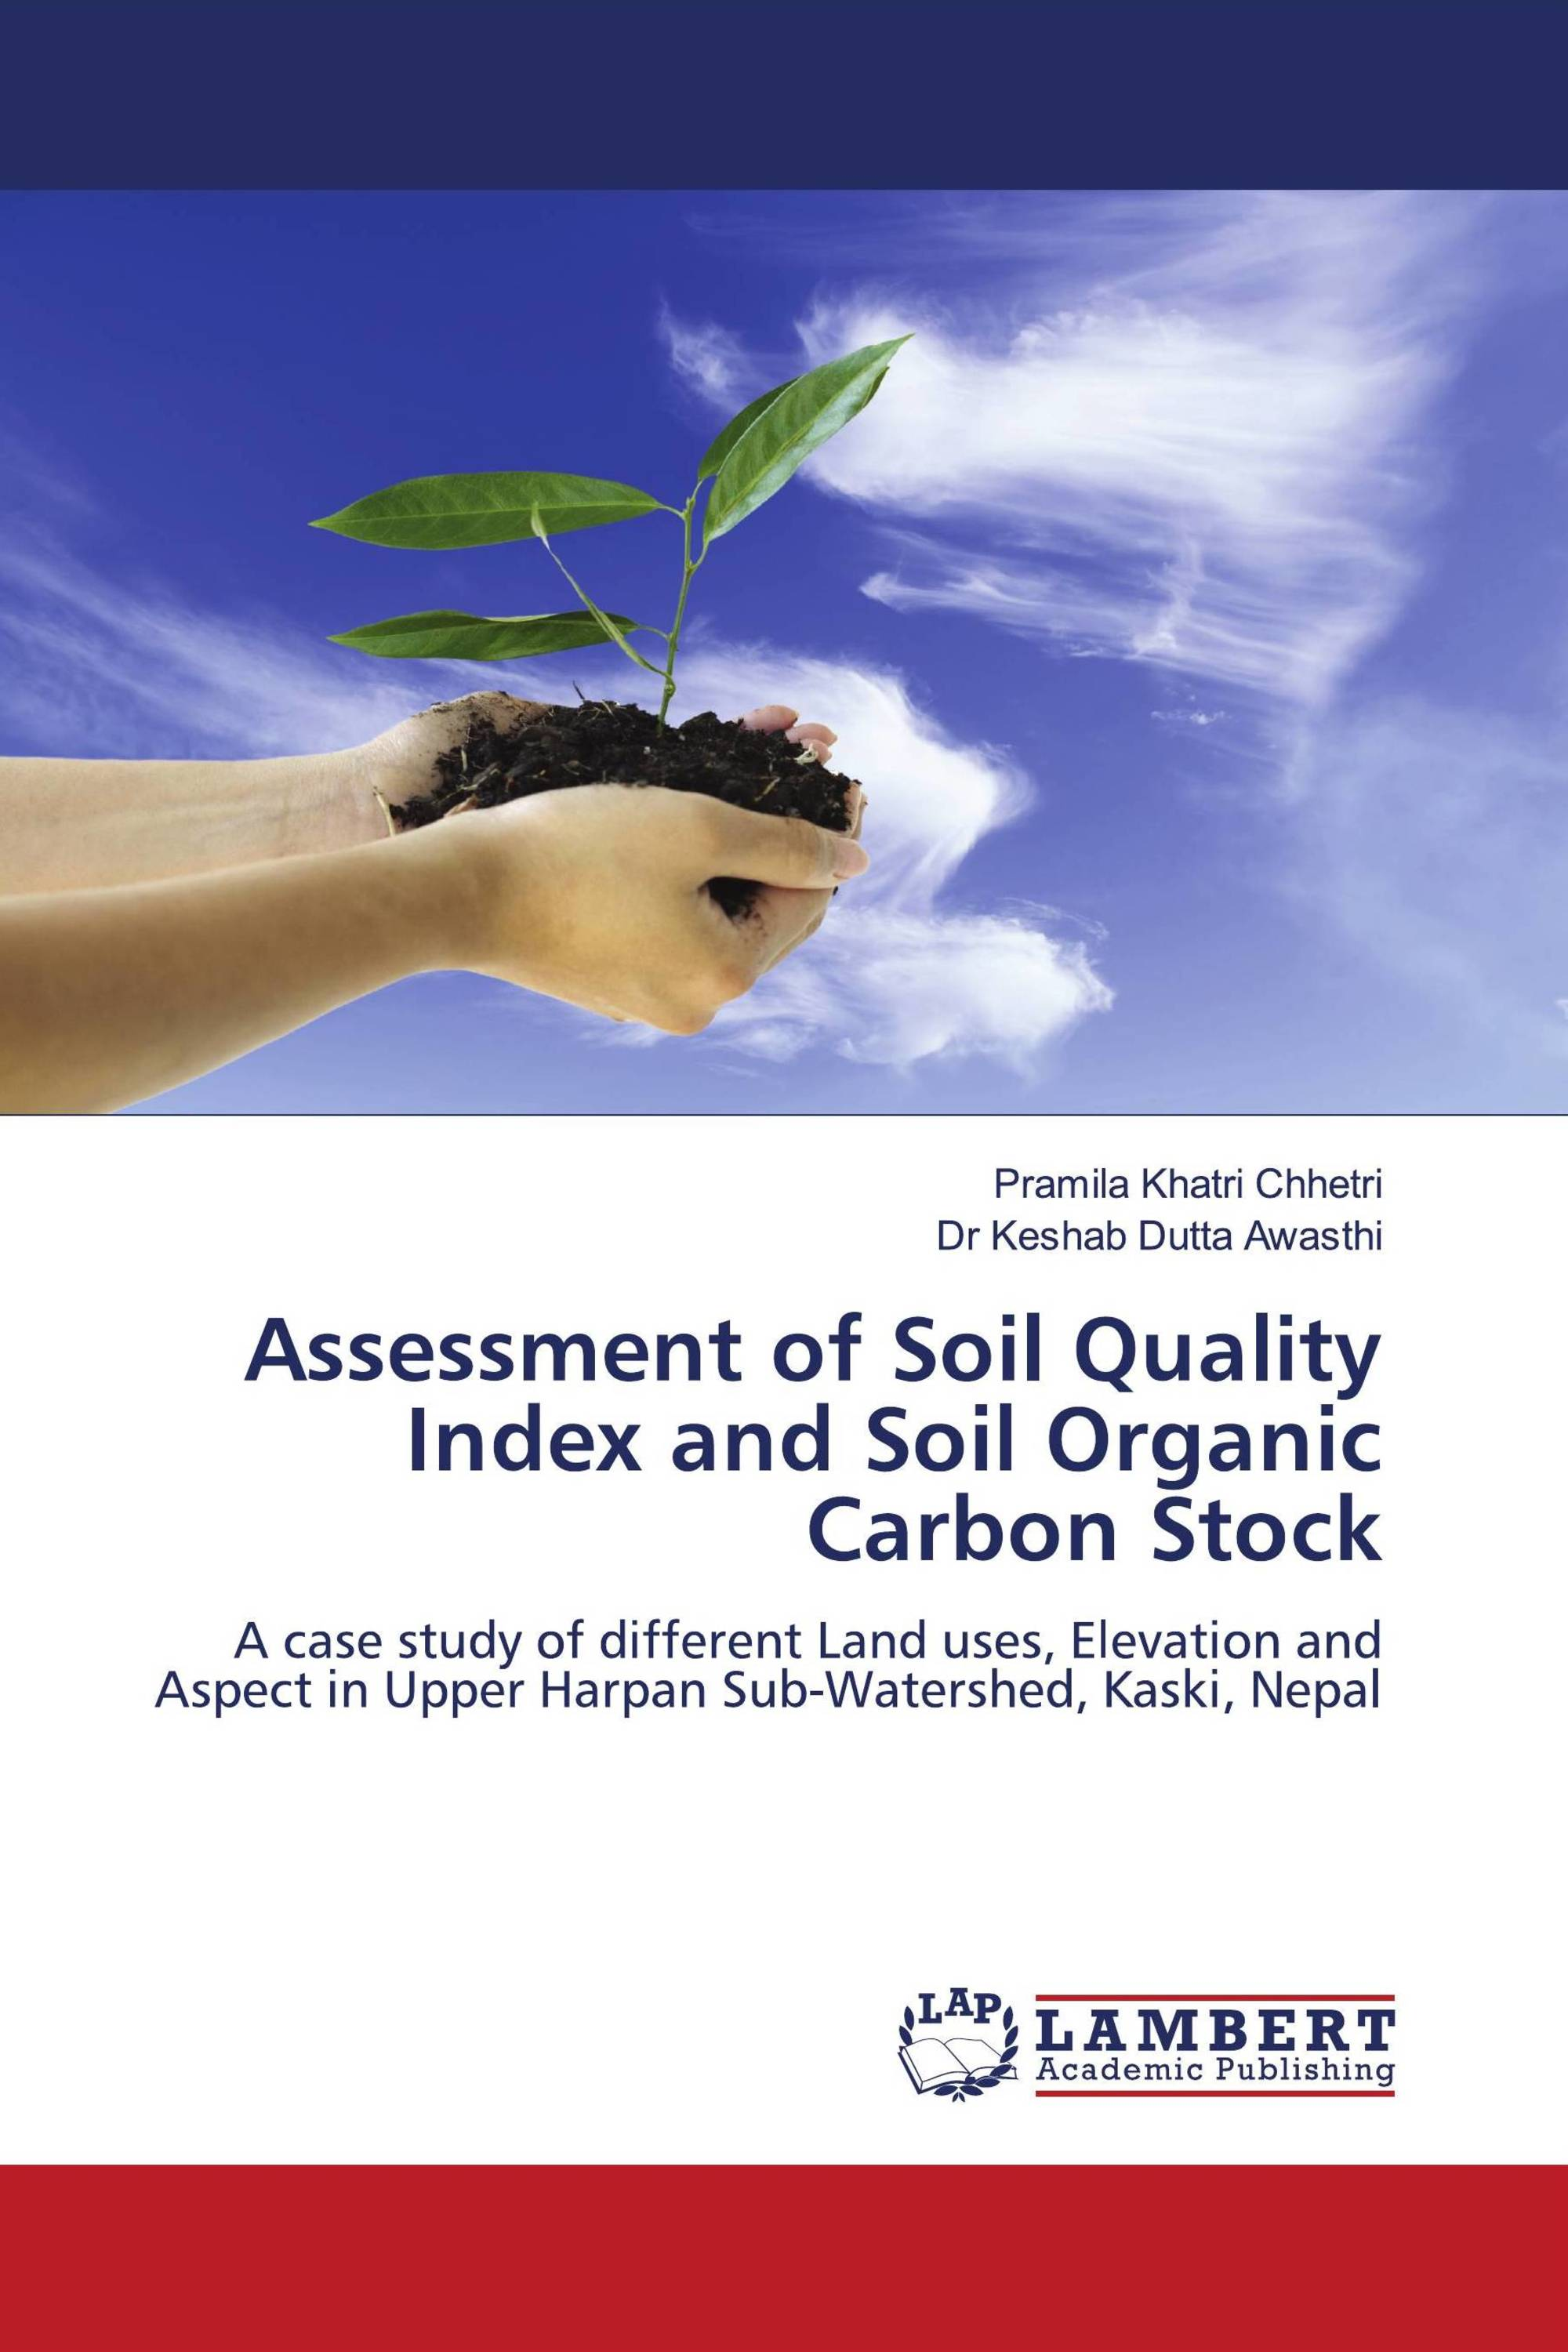 Assessment of Soil Quality Index and Soil Organic Carbon Stock